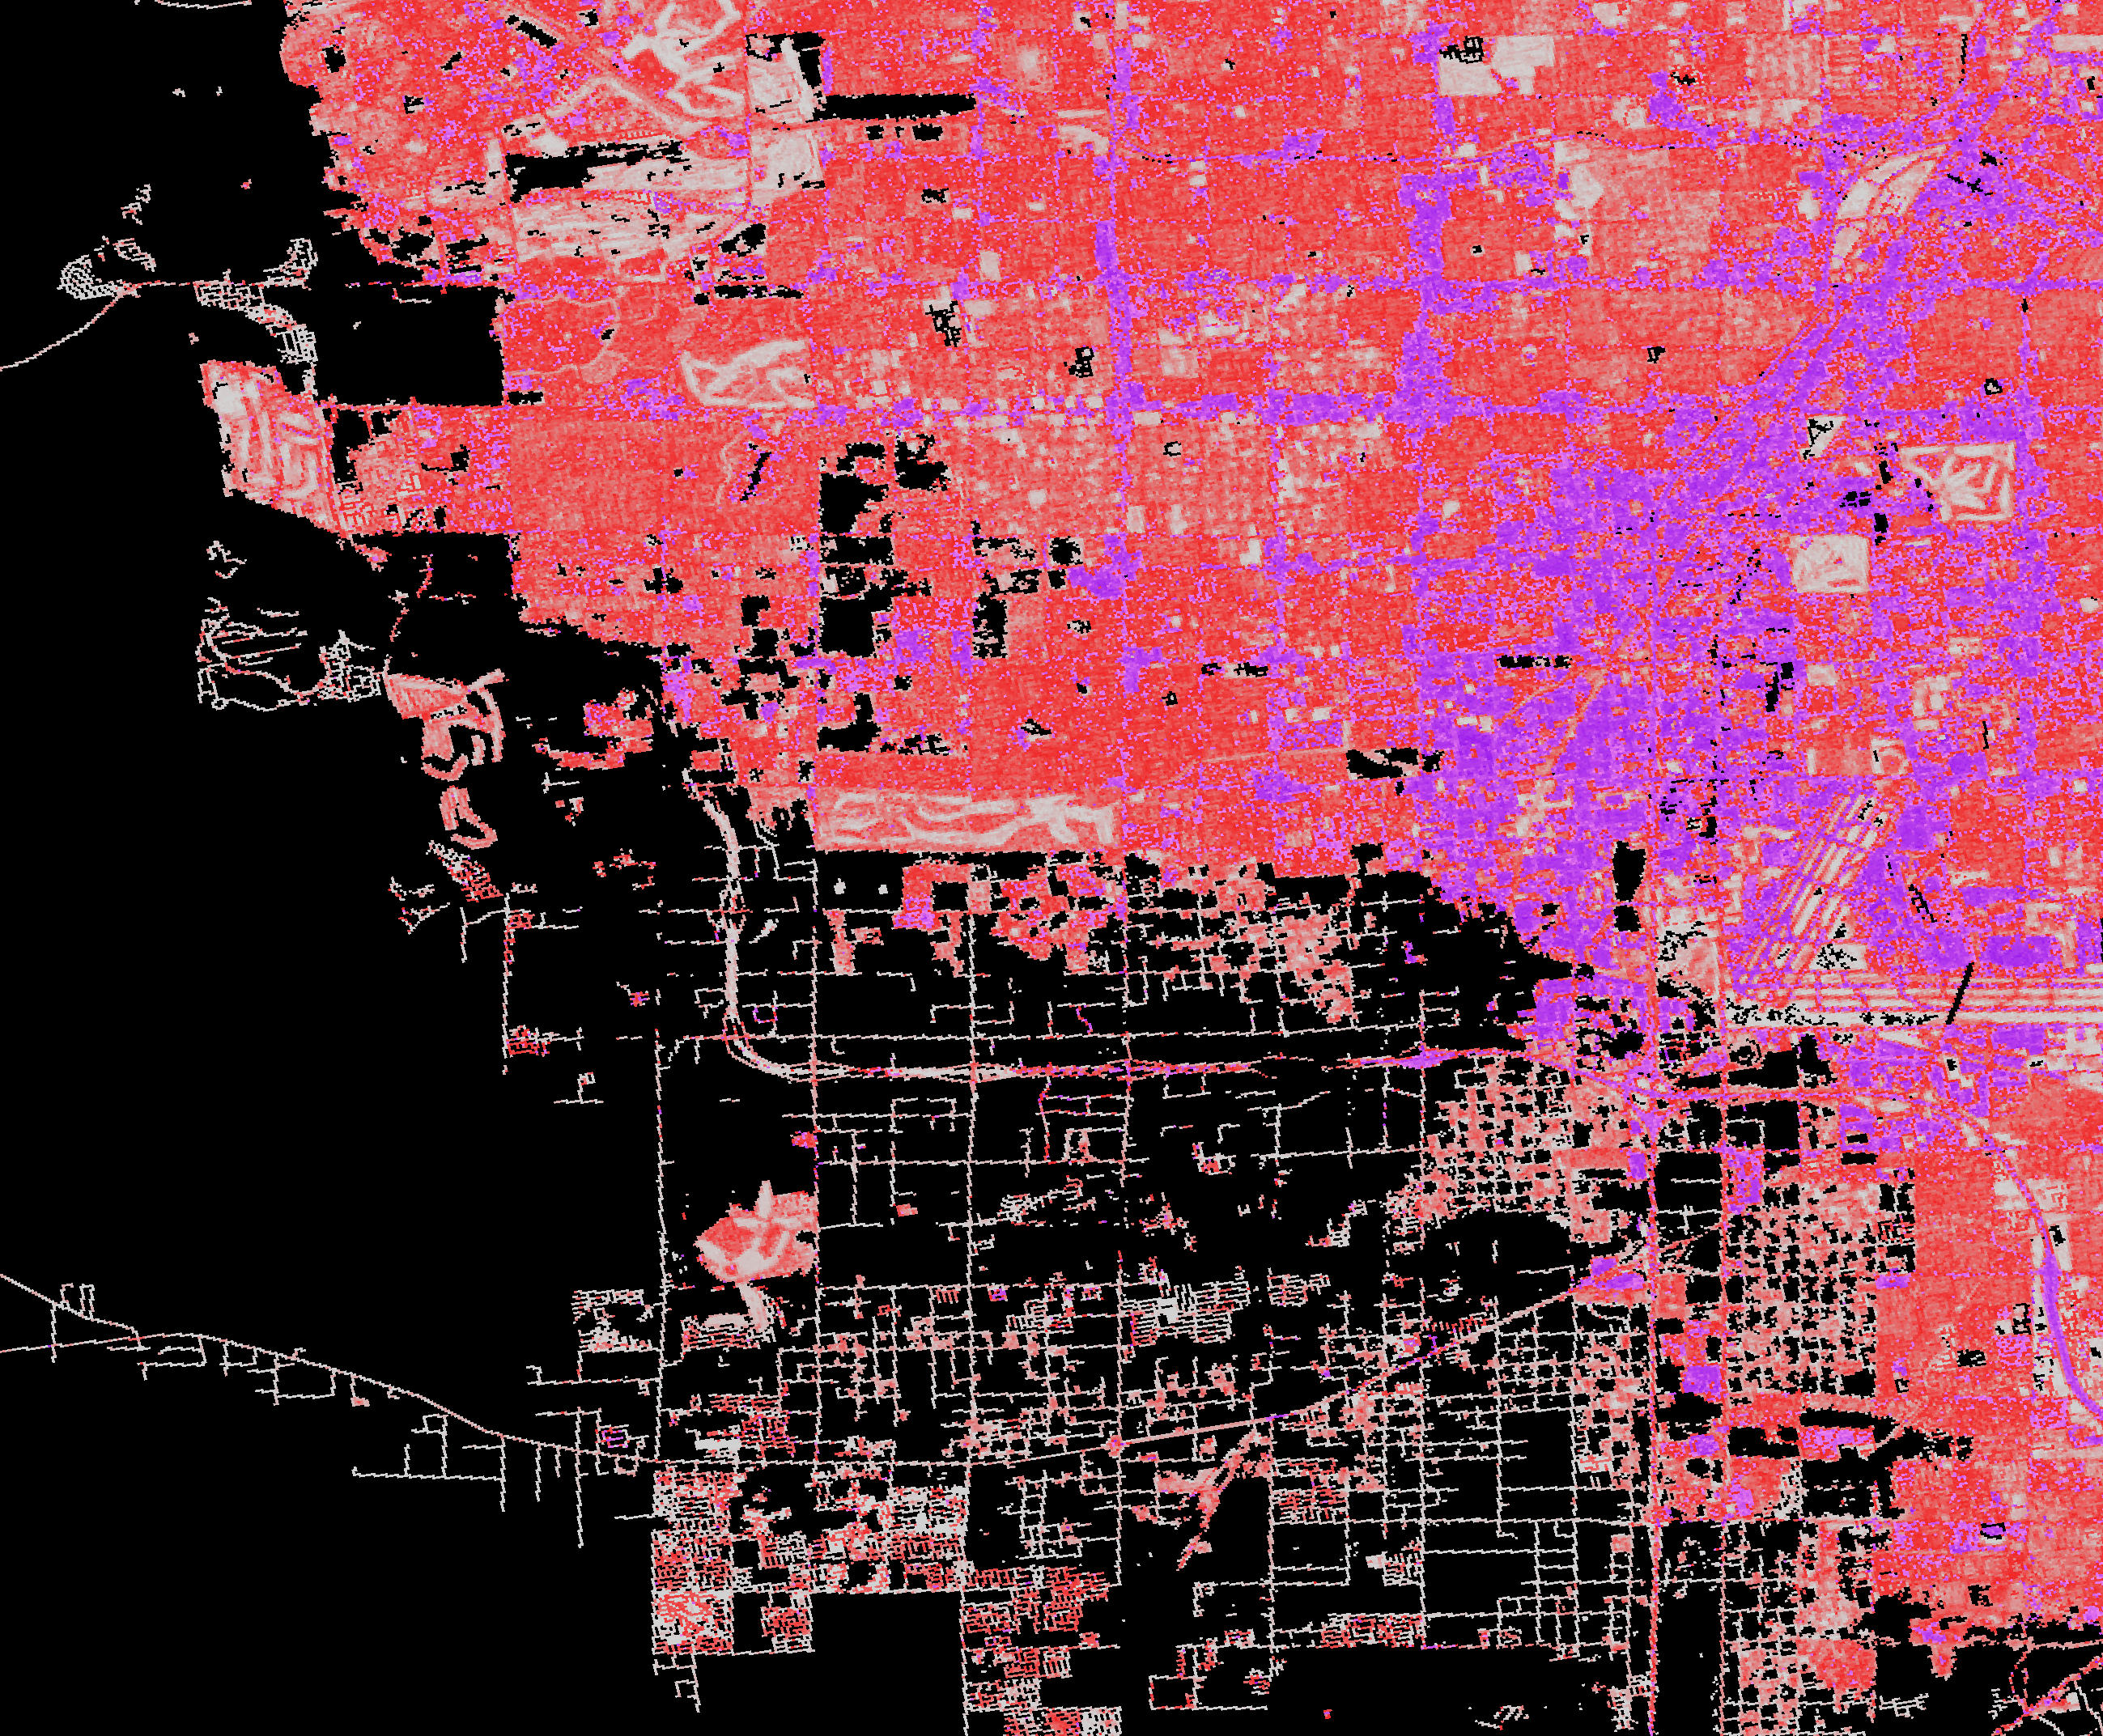 National Land Cover Database (NLCD) 2001, Impervious Surface, Las Vegas, Nevada,